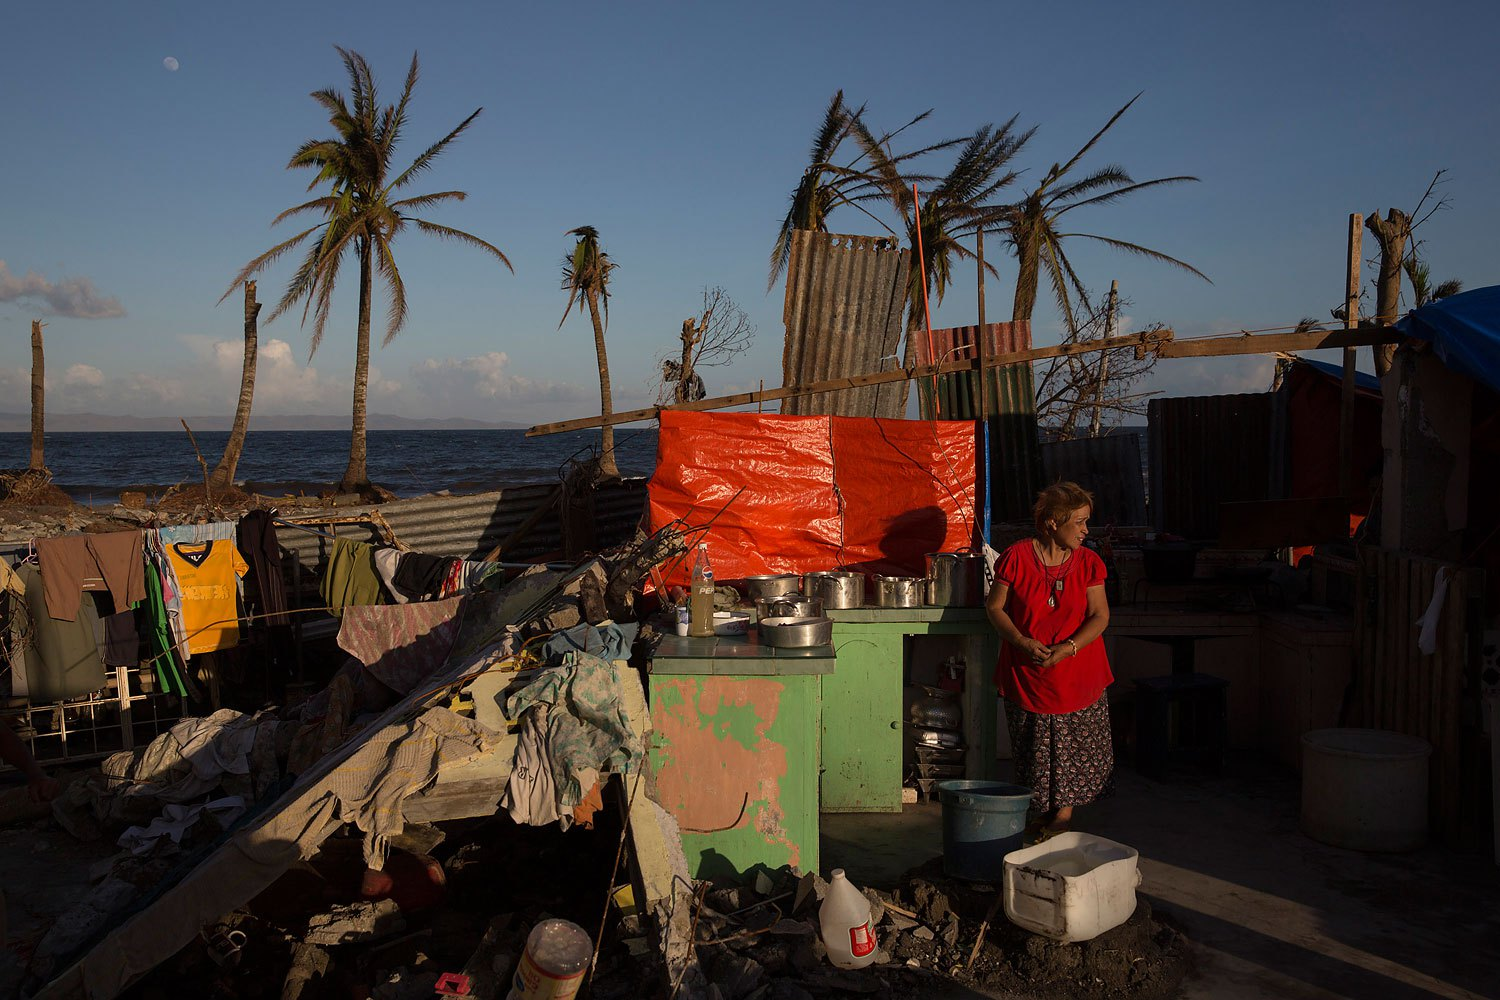 A woman stands in the kitchen of her home destroyed by Typhoon Haiyan in Tanuan,  Philippines on November 15, 2013.